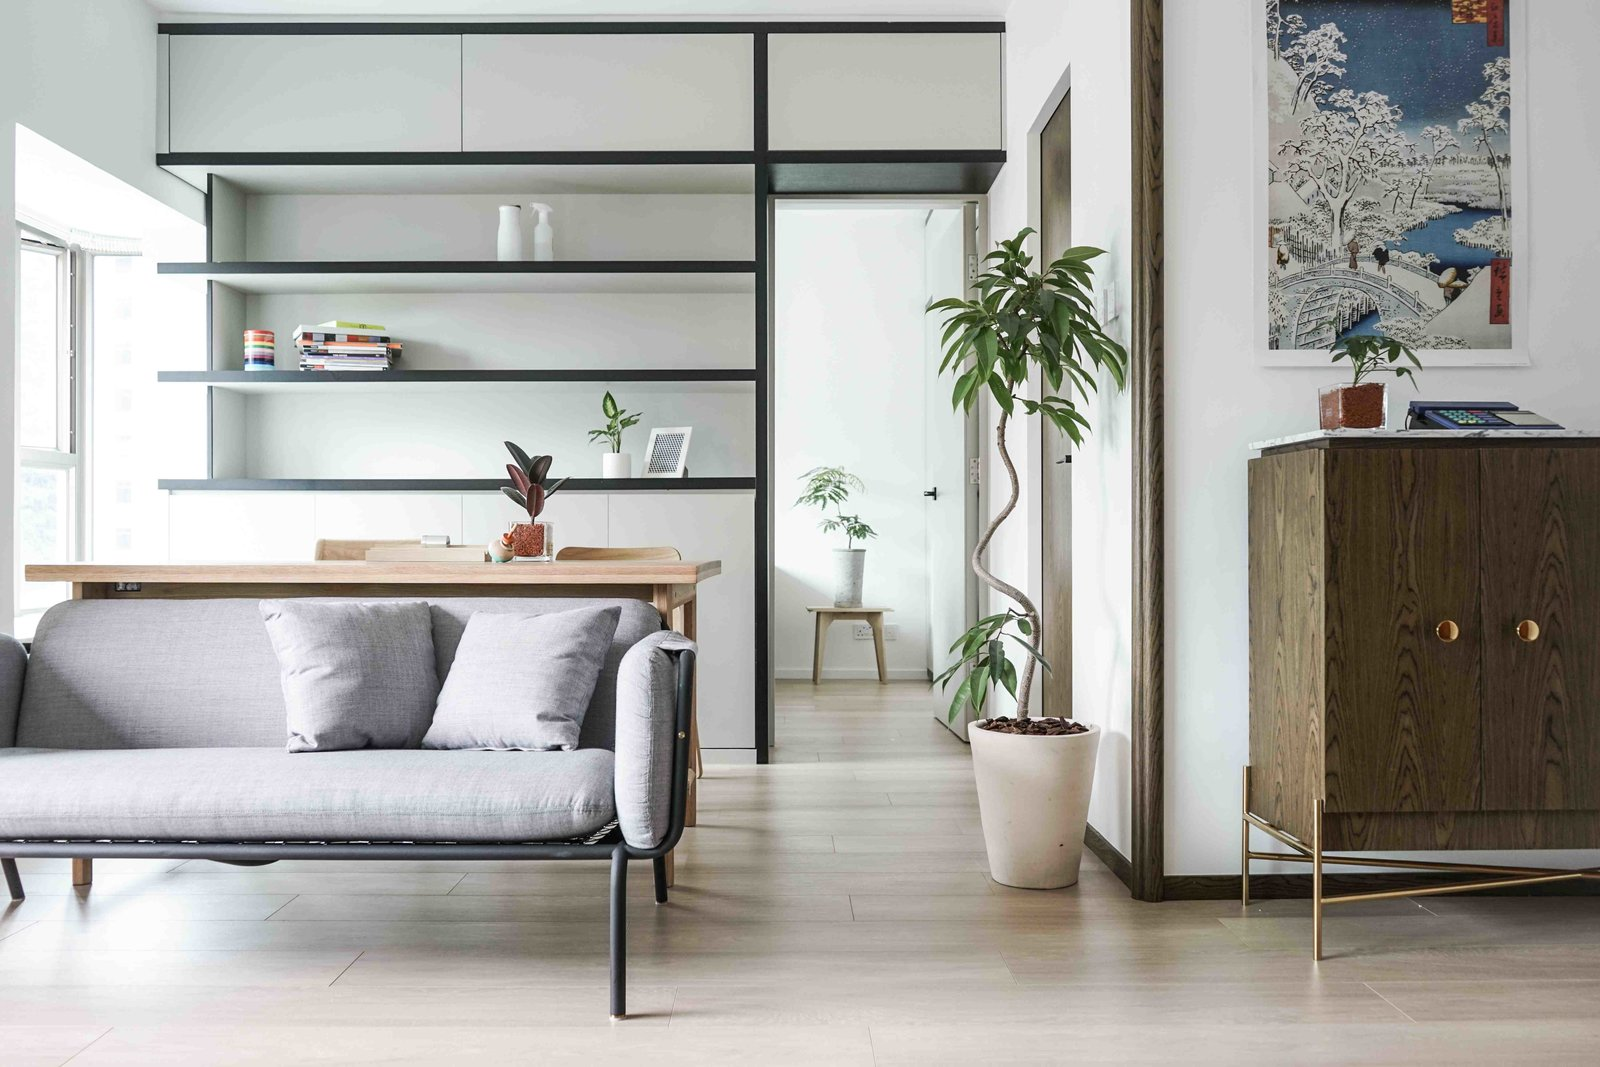 Photo 11 of 11 in 10 Small Apartments by a Hong Kong Design Studio